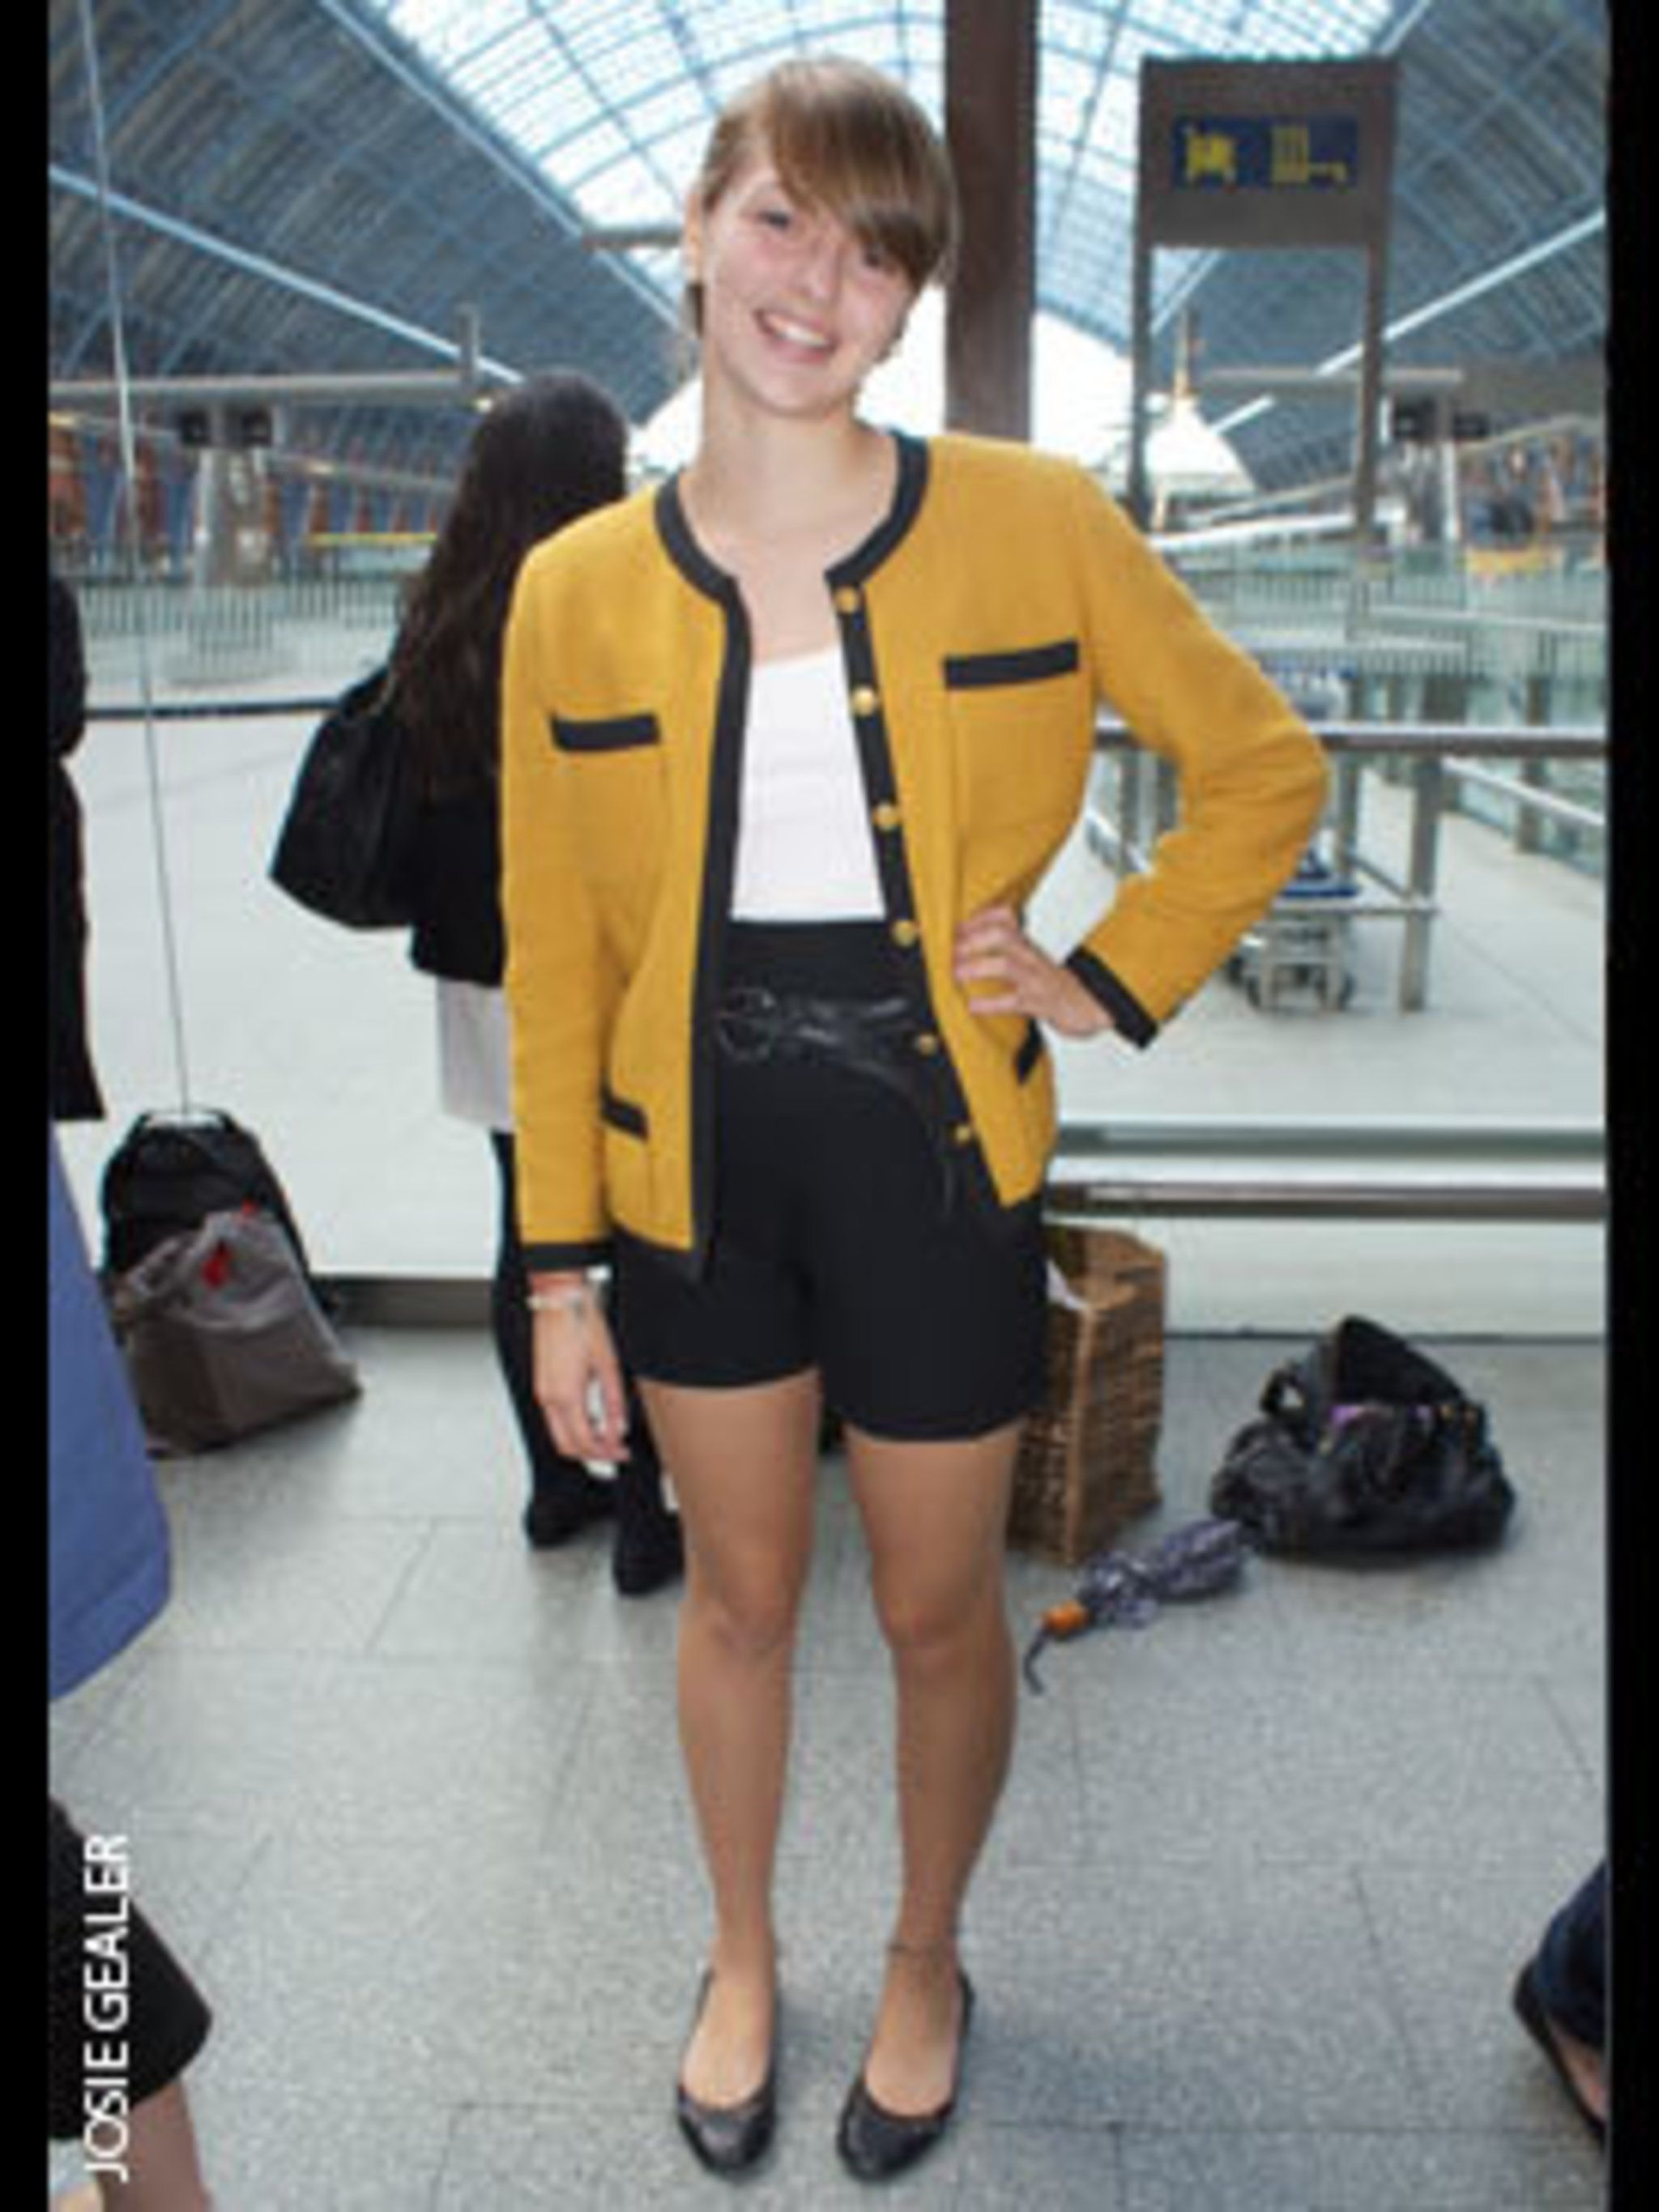 <p>Sarah Crawford, Student, wears vintage Chanel jacket, Moschino trousers, and Steve Madden shoes.</p>